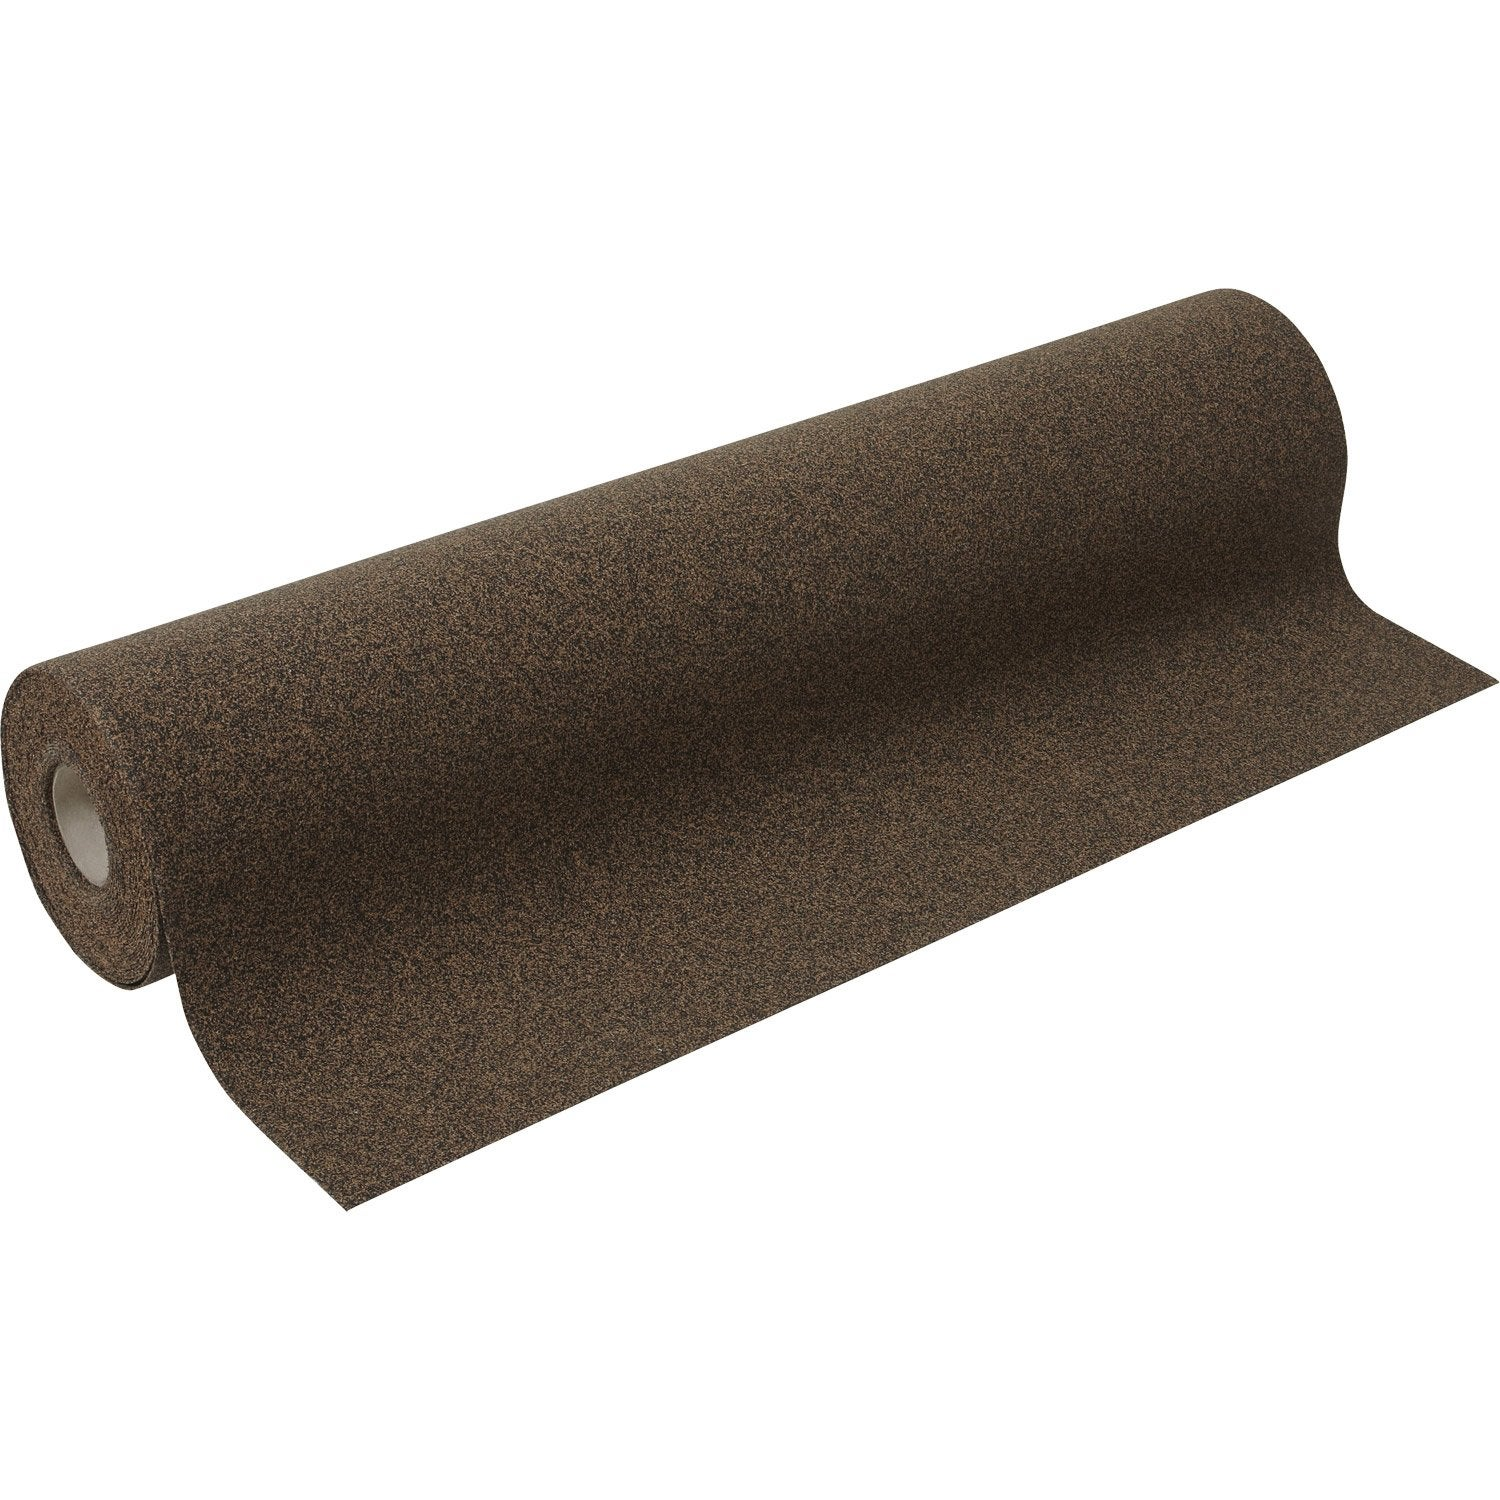 Sous couche isolante phonique 15m leroy merlin for Isolation acoustique sous carrelage